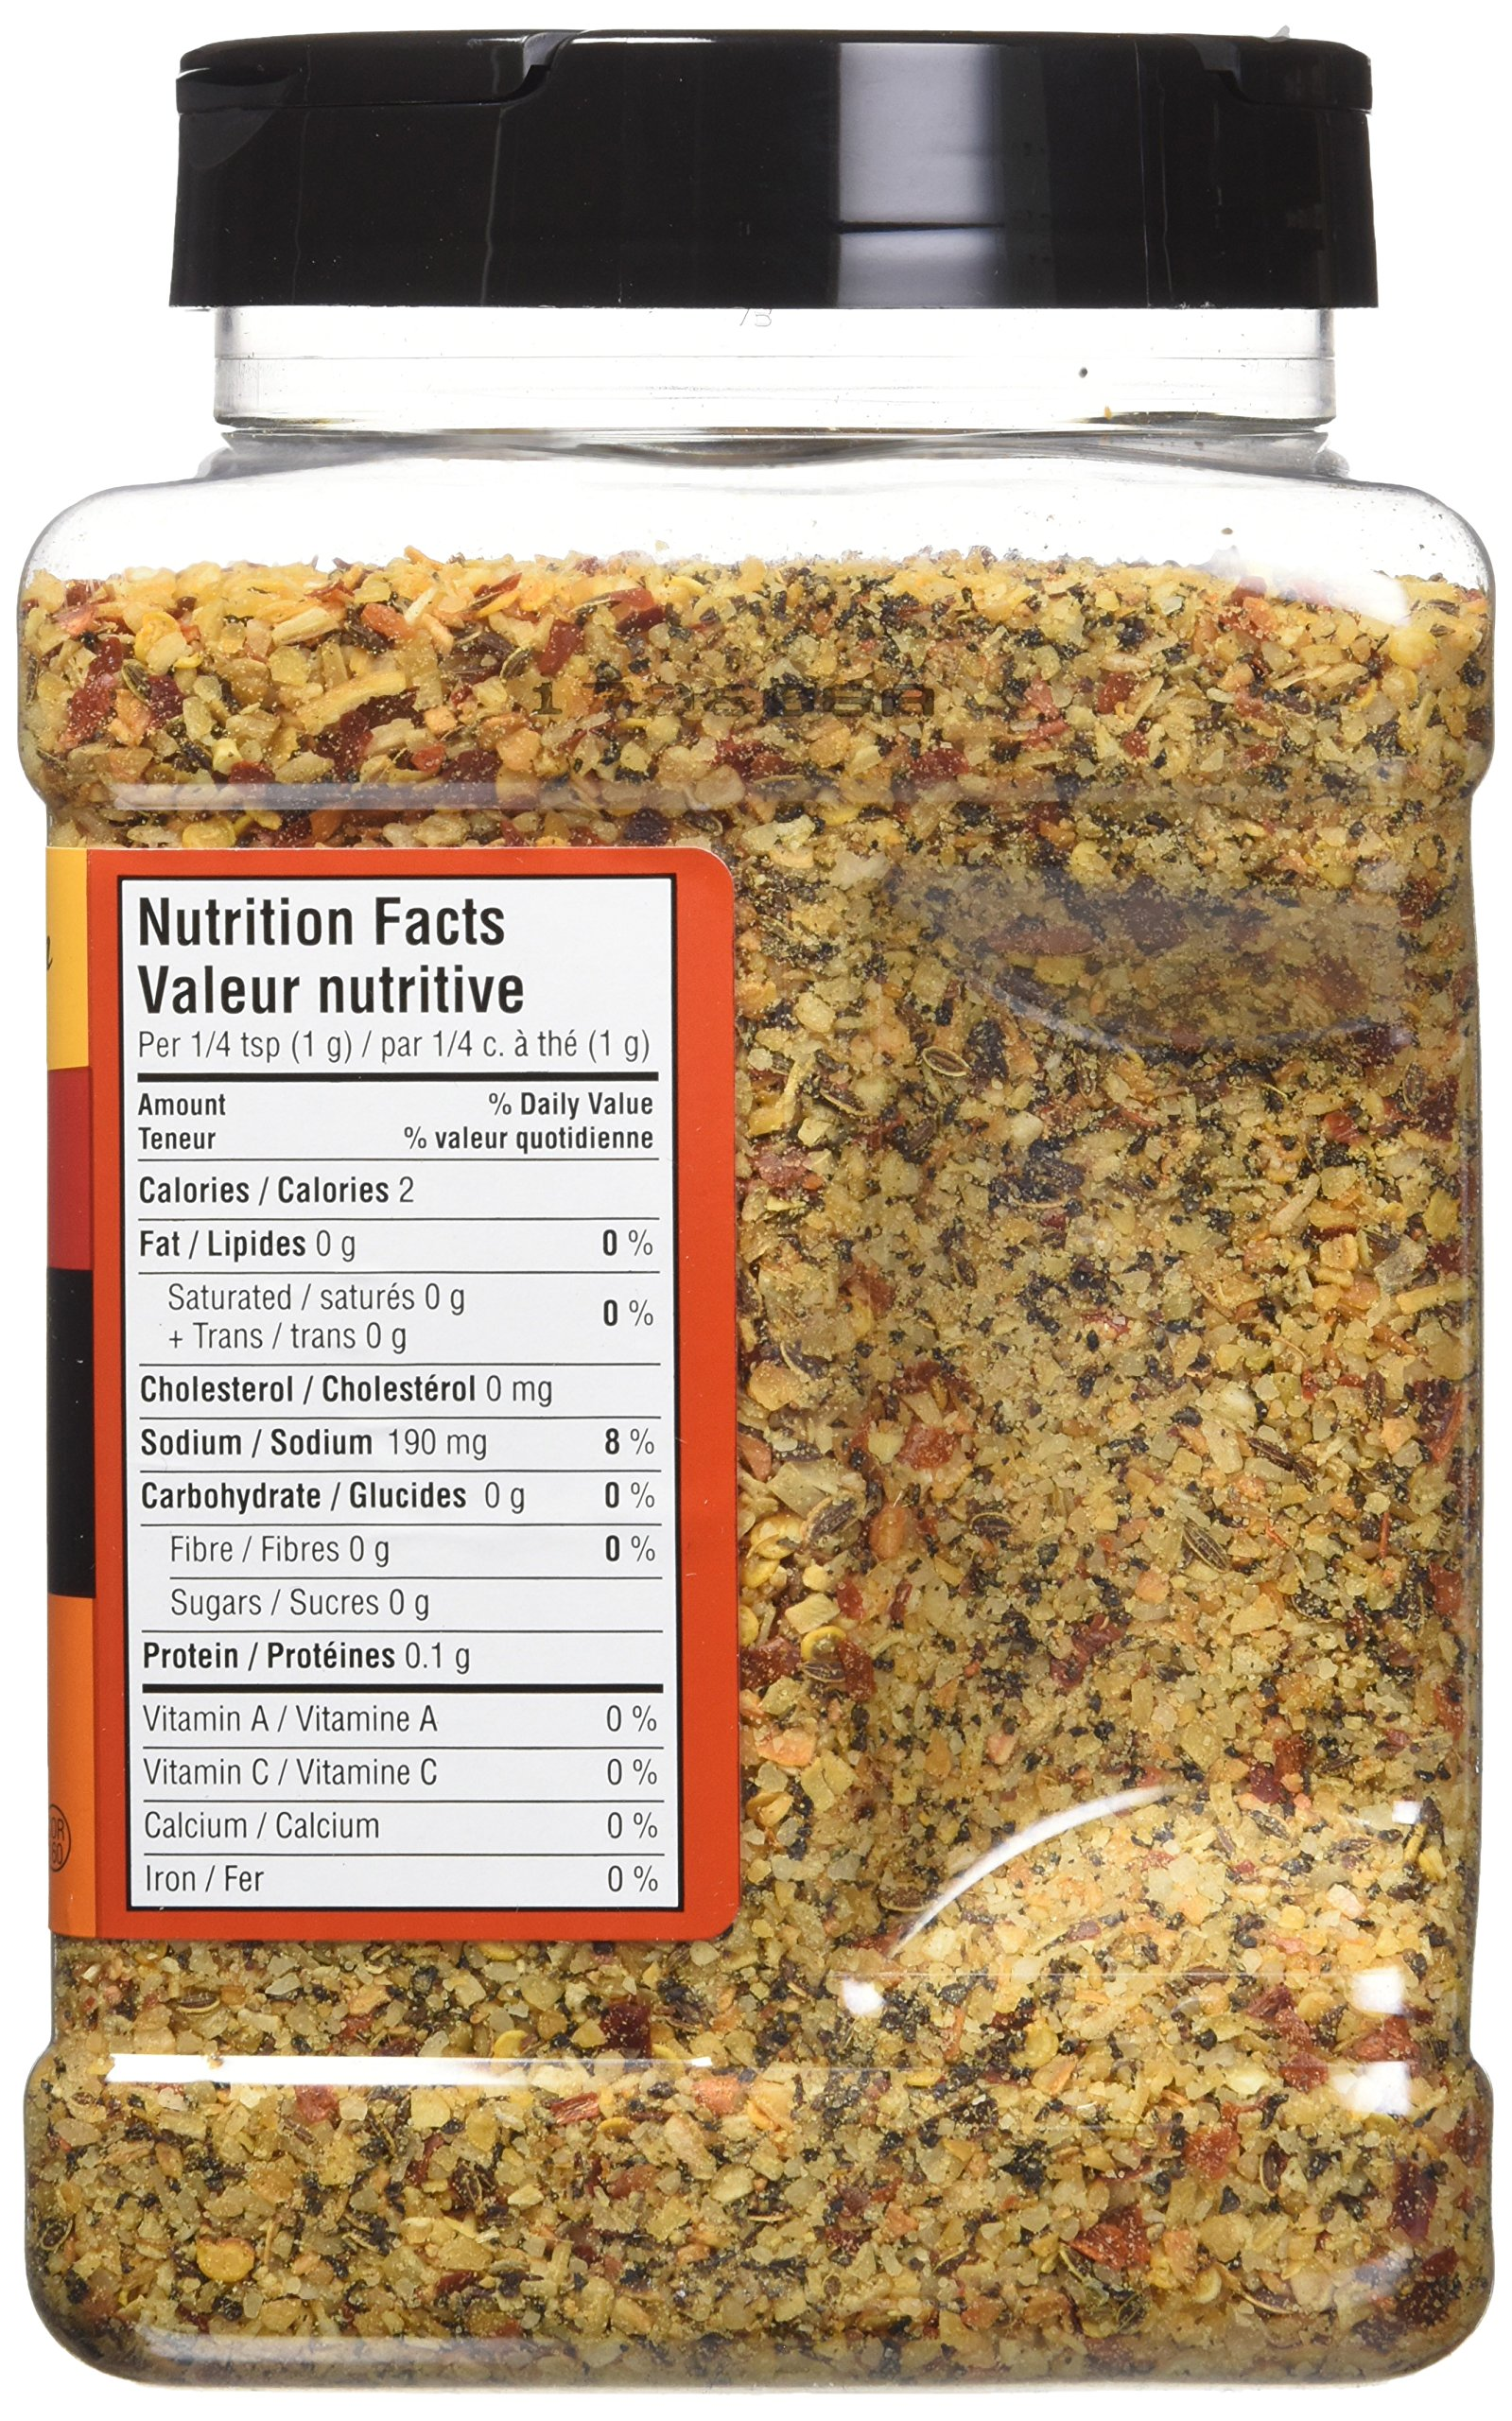 The Keg Steakhouse Steak Seasoning Gluten Free No MSG Added - 1.1kg | 38.8oz {Imported from Canada} by The Keg (Image #5)